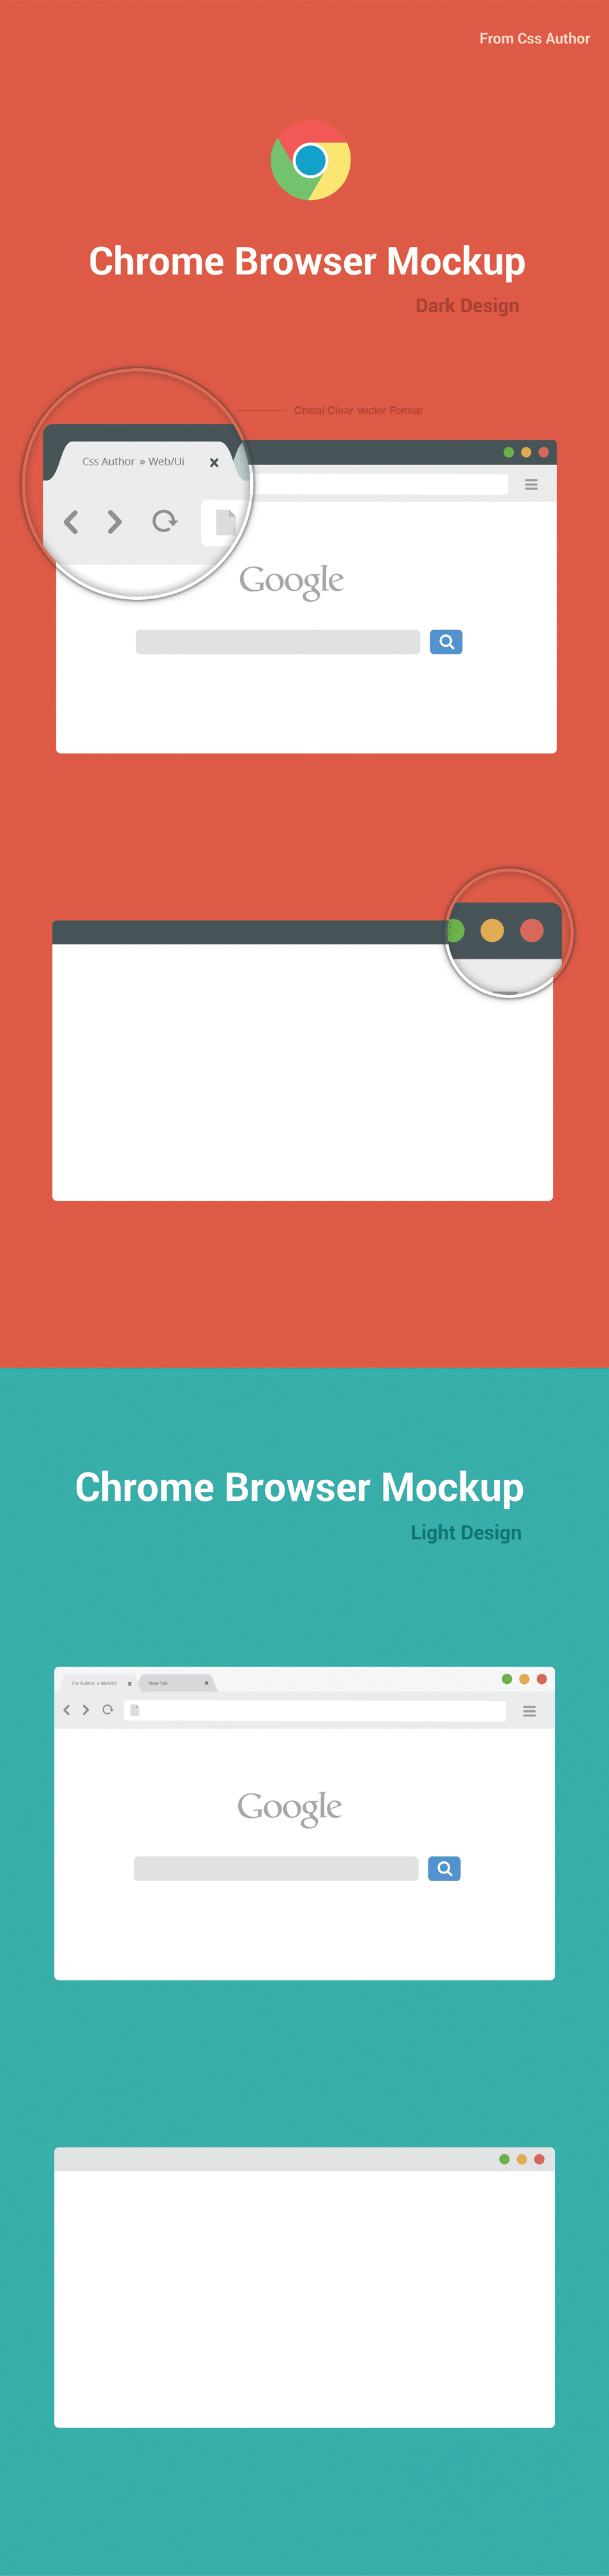 Free Chrome Browser Mockup Design Template – Vector